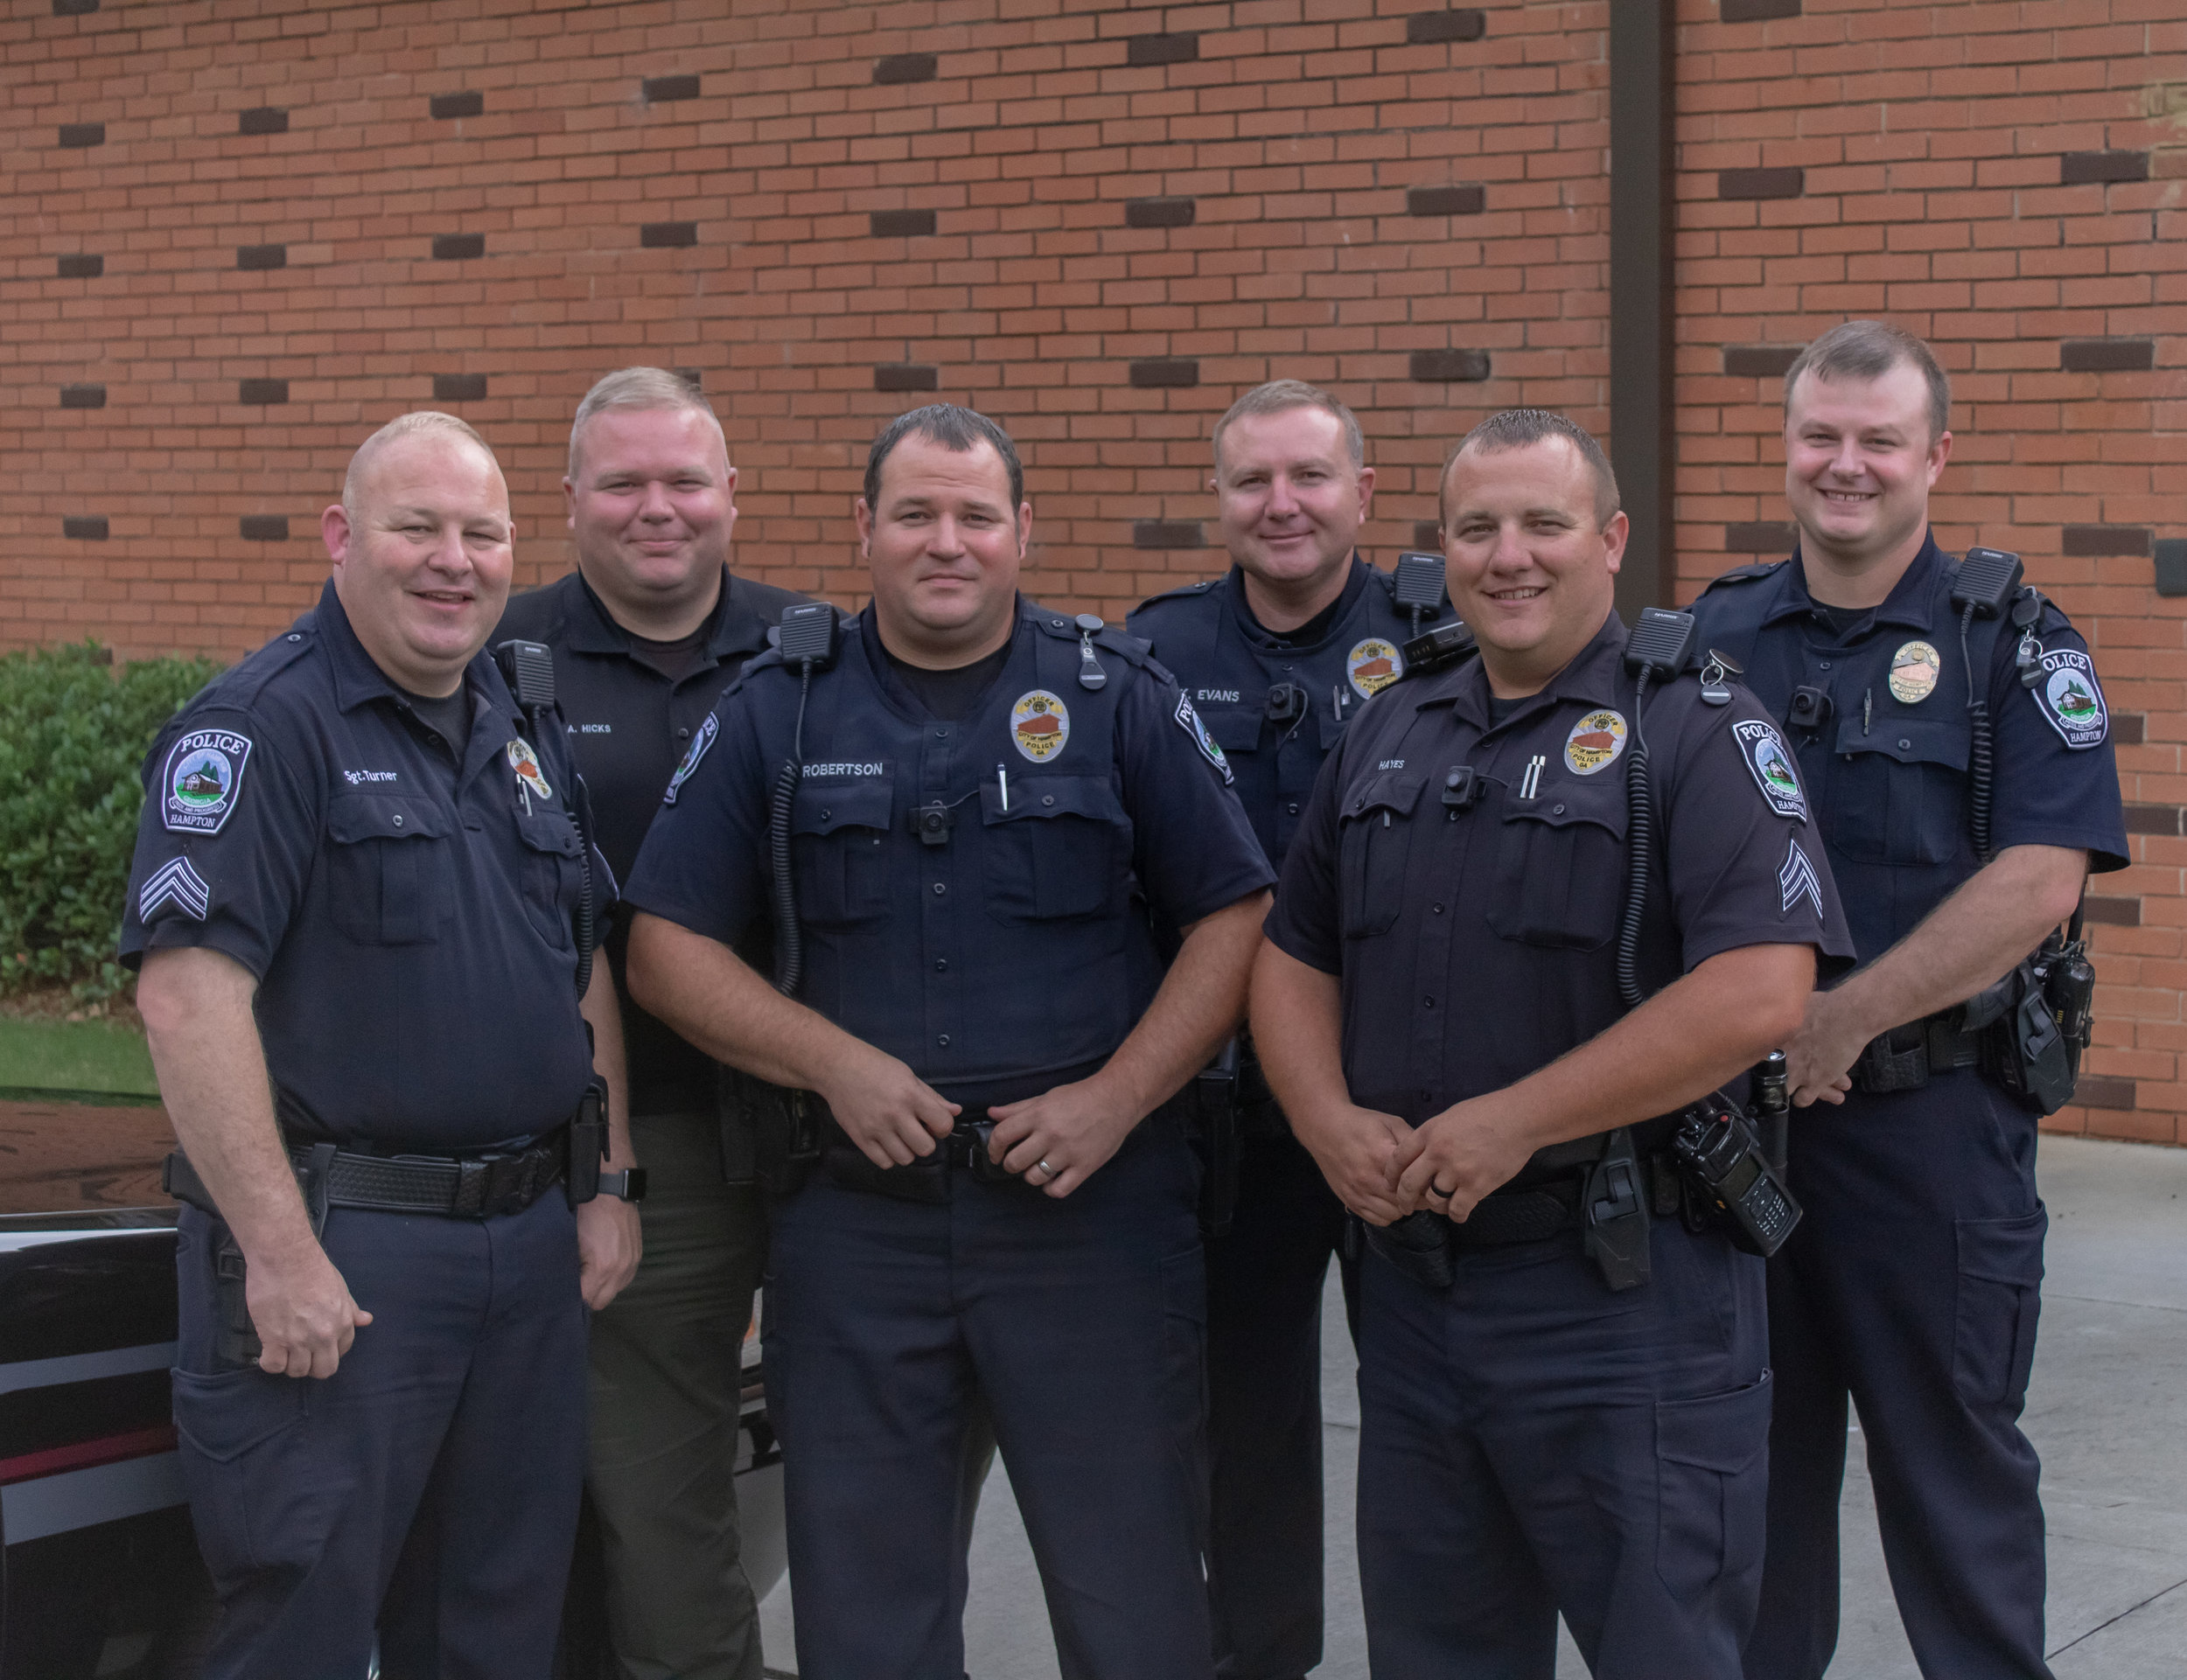 Featured here are a handful of our local Hampton Police Department officers! Thank you for all you do!